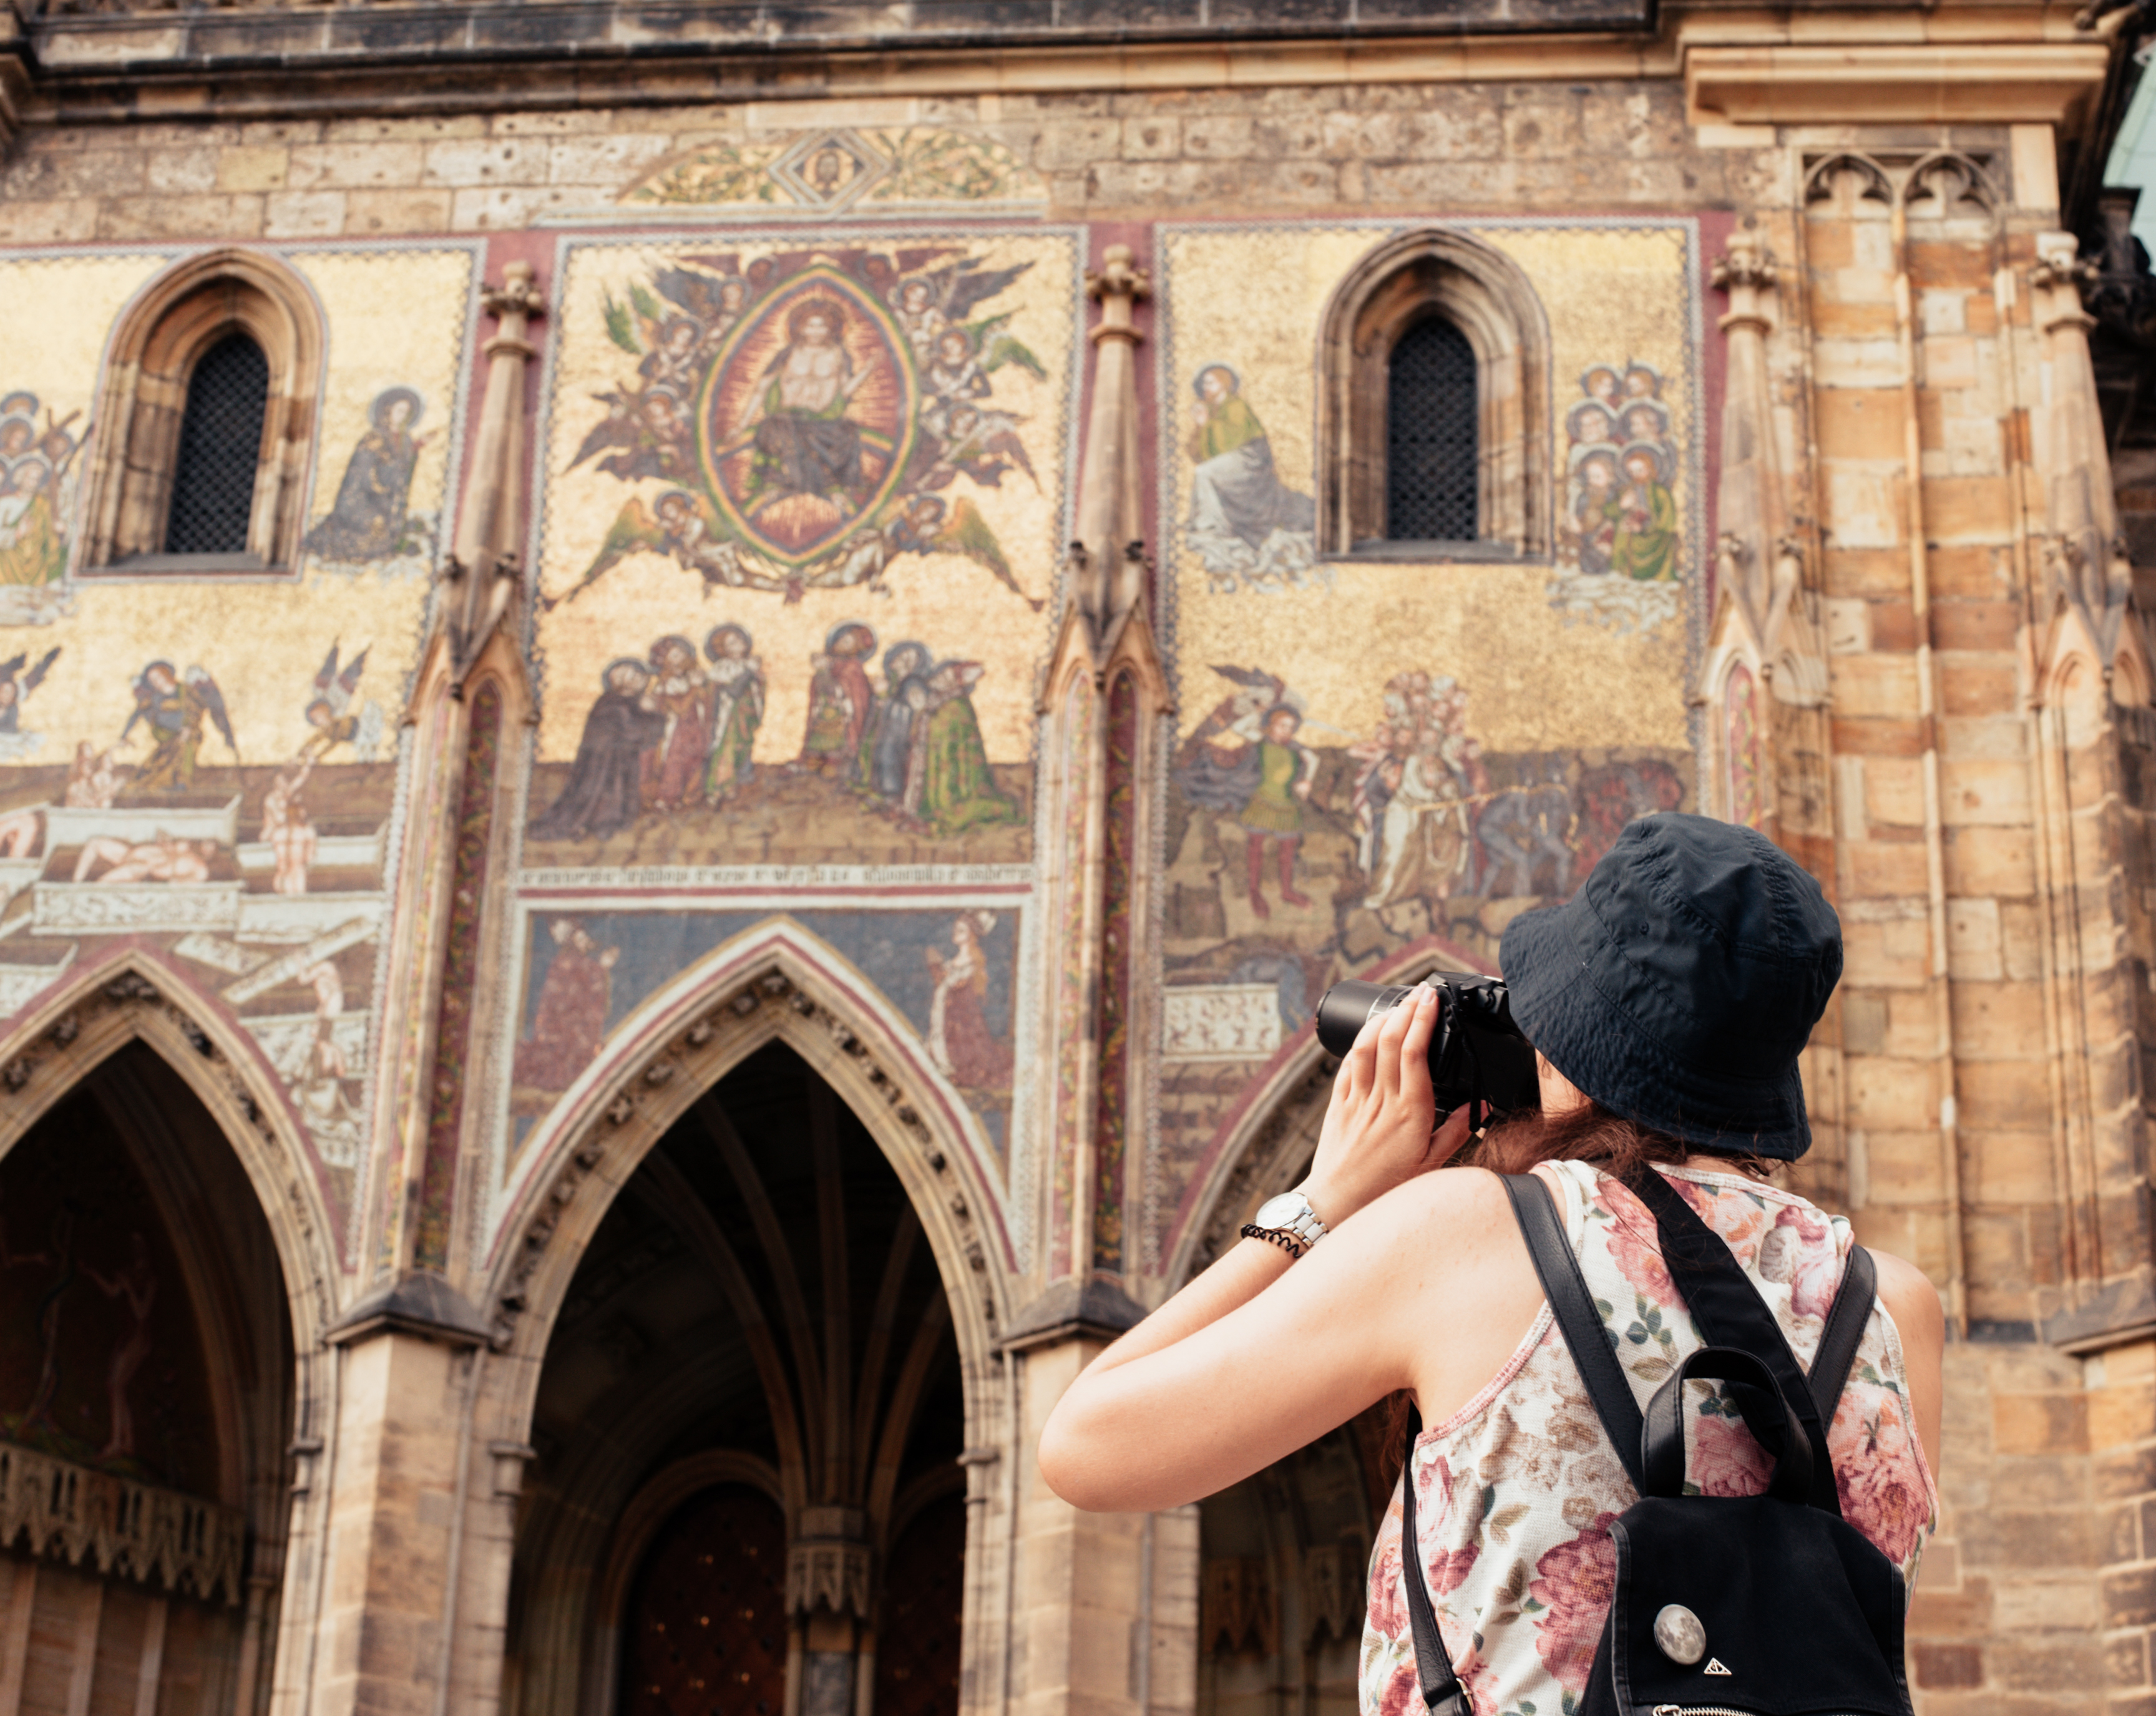 A tourist takes a photo of a wall in prague